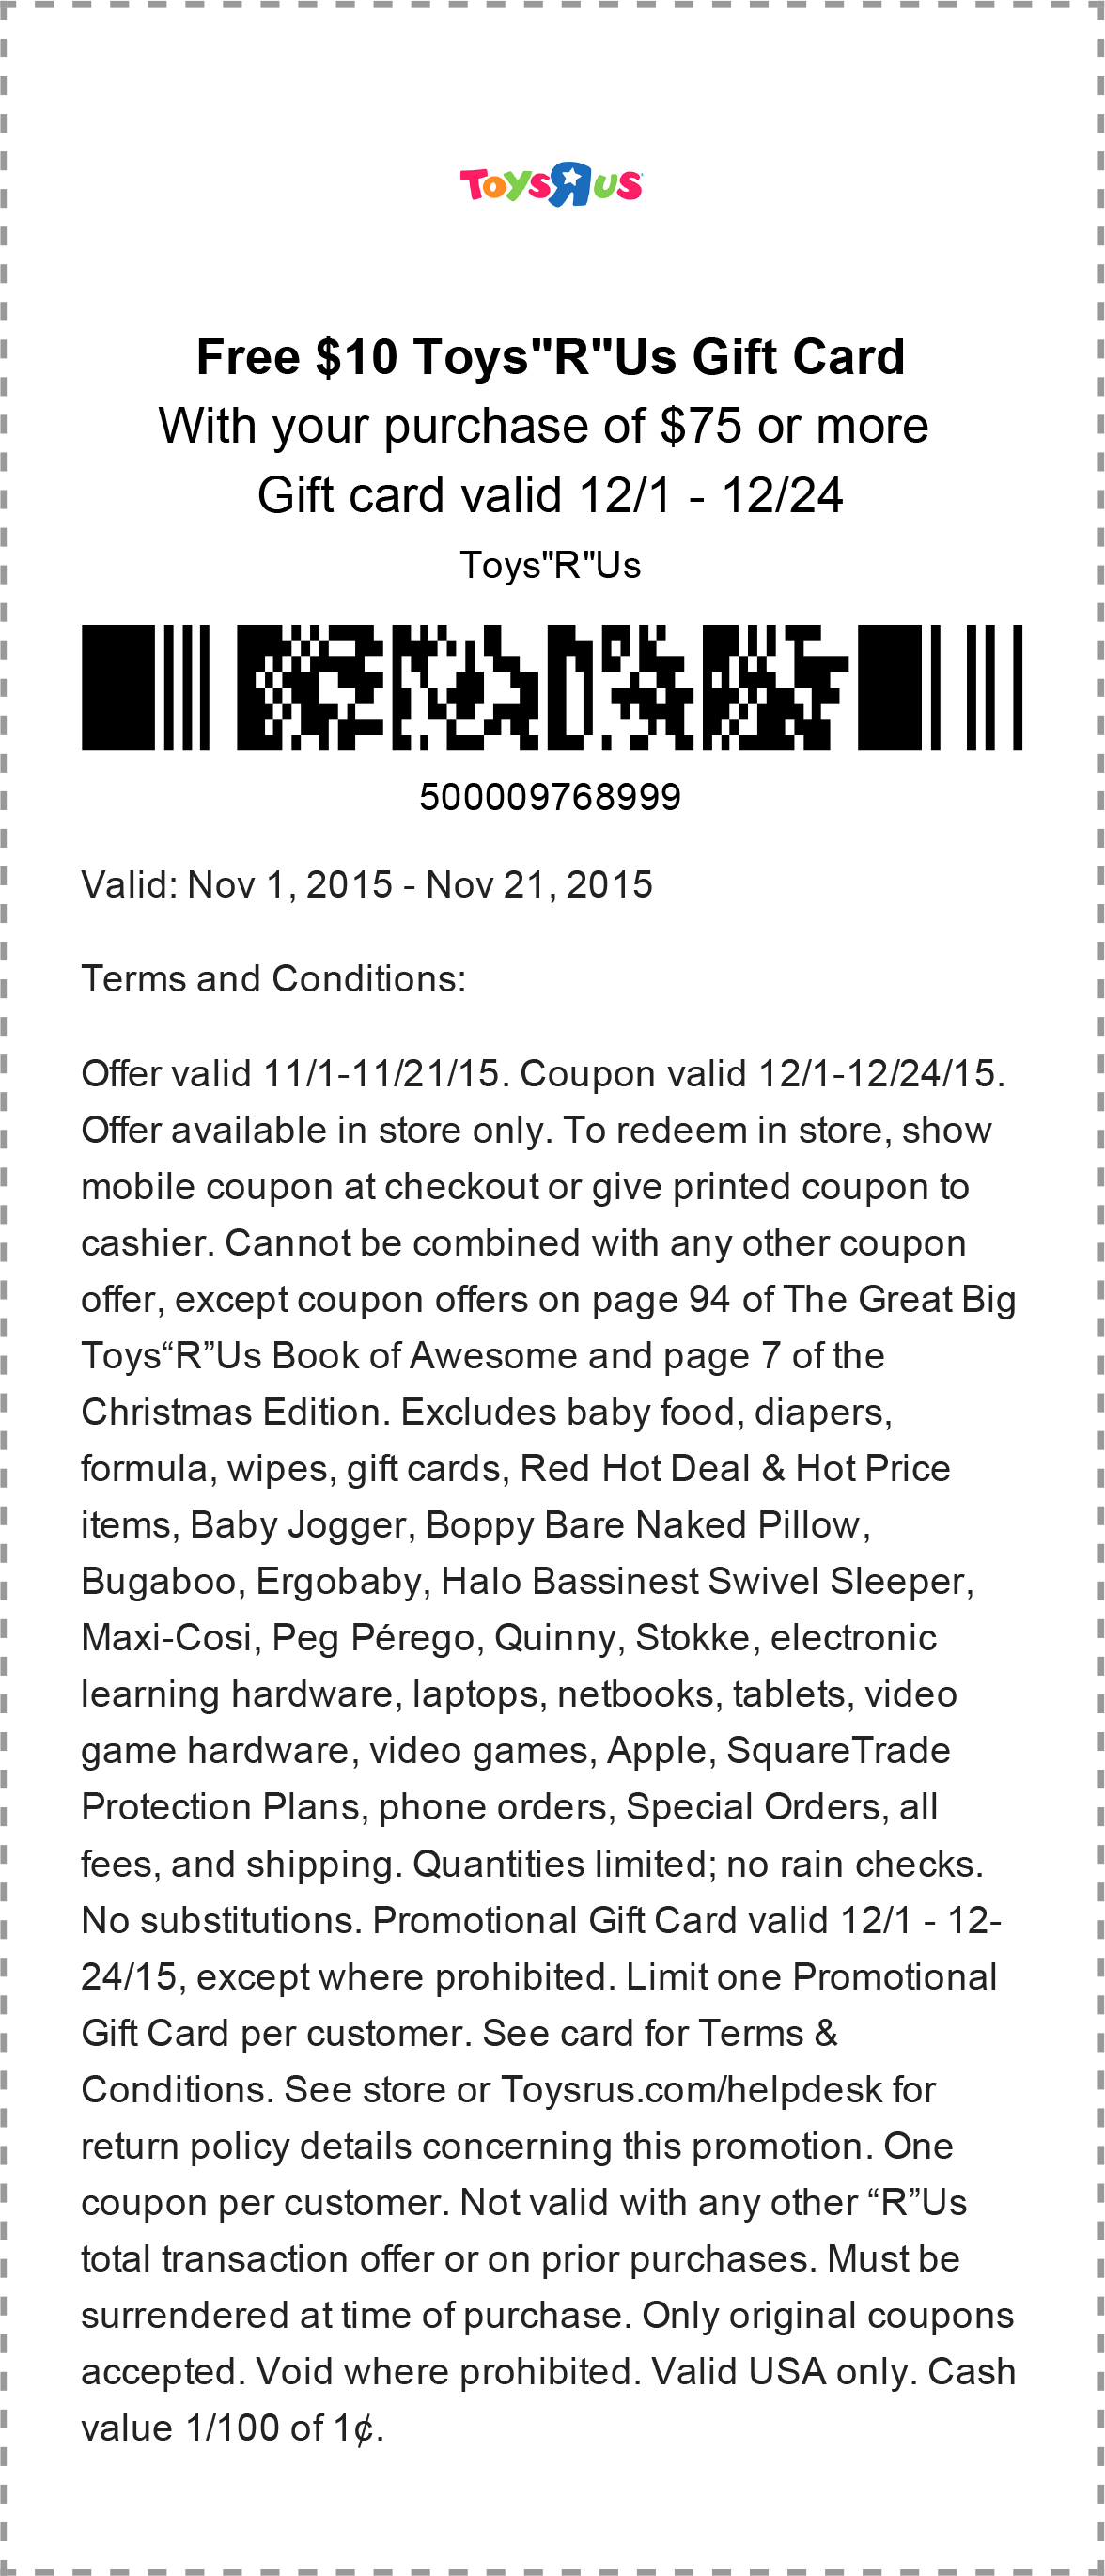 Toys R Us Coupon October 2018 $10 gift card free with $75 spent at Toys R Us